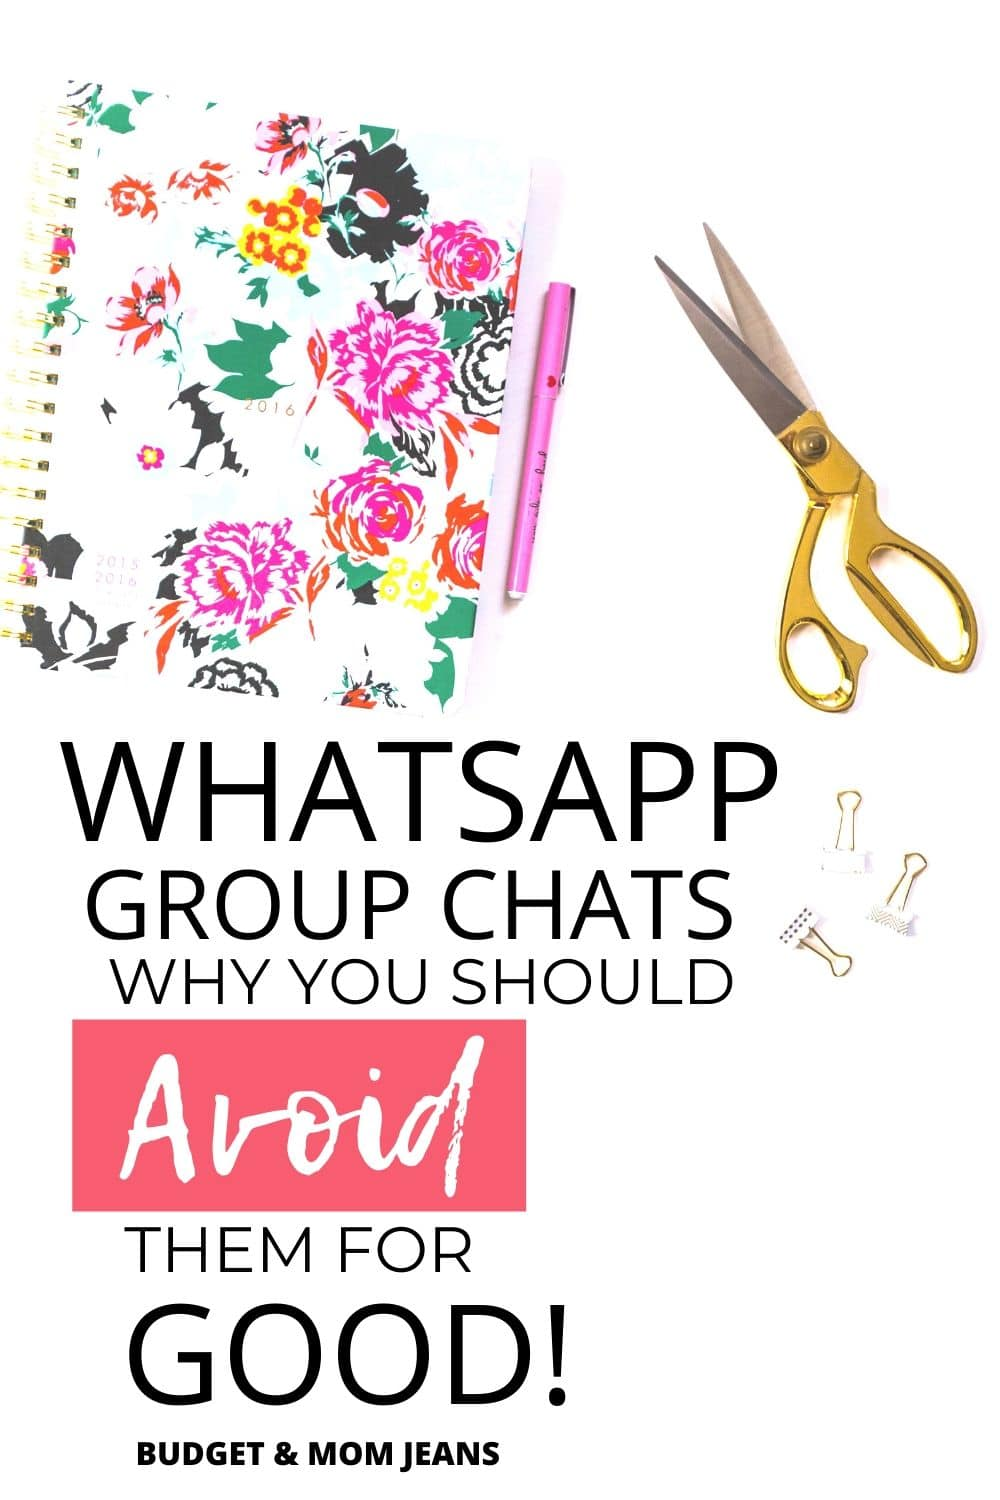 WhatsApp Group Chats - Why You Should Avoid Them For Good